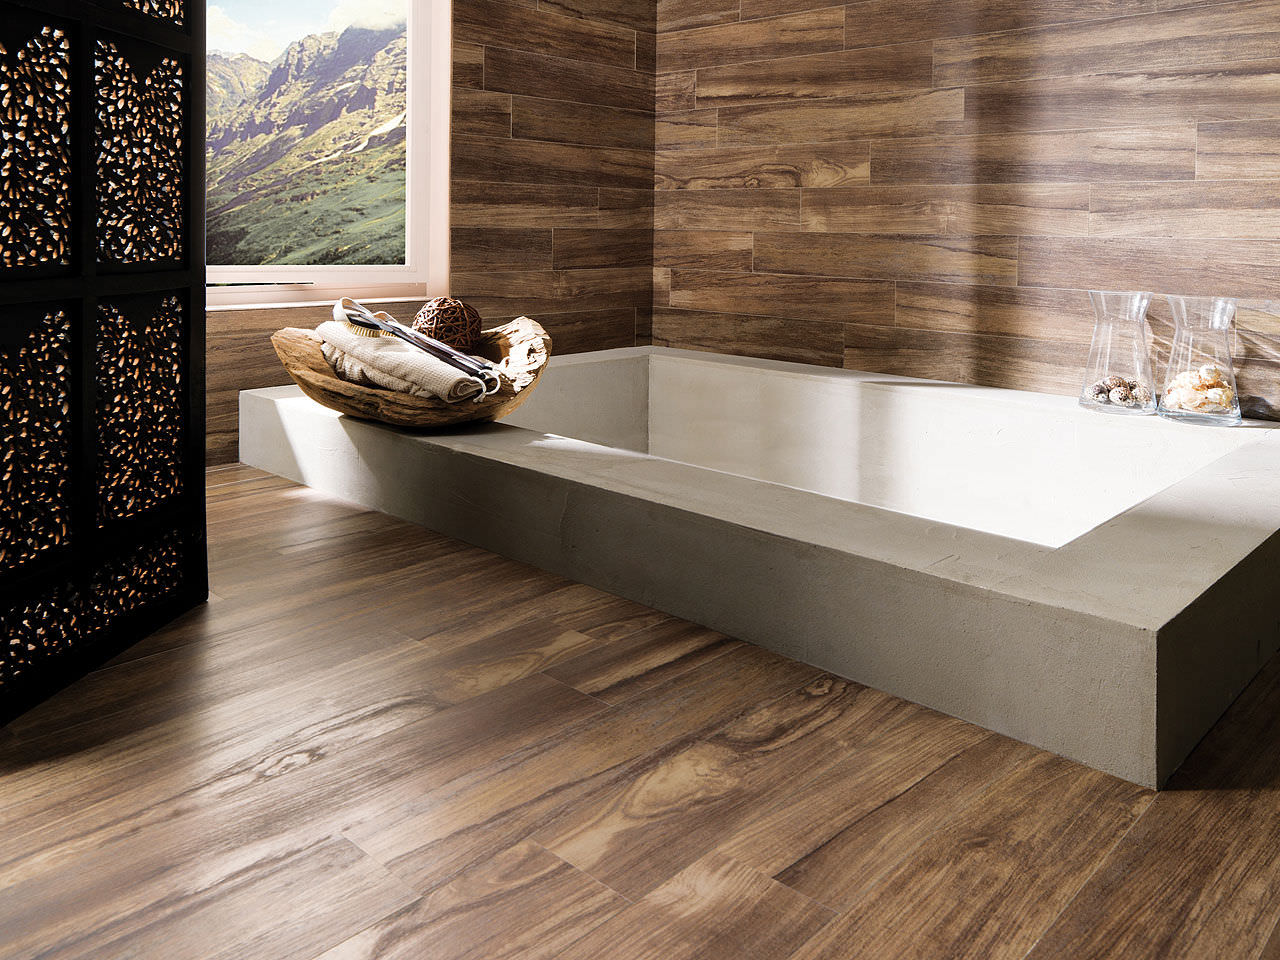 Wood effect flooring for bathrooms - 25 Pictures And Ideas Of Wood Effect Bathroom Floor Tile